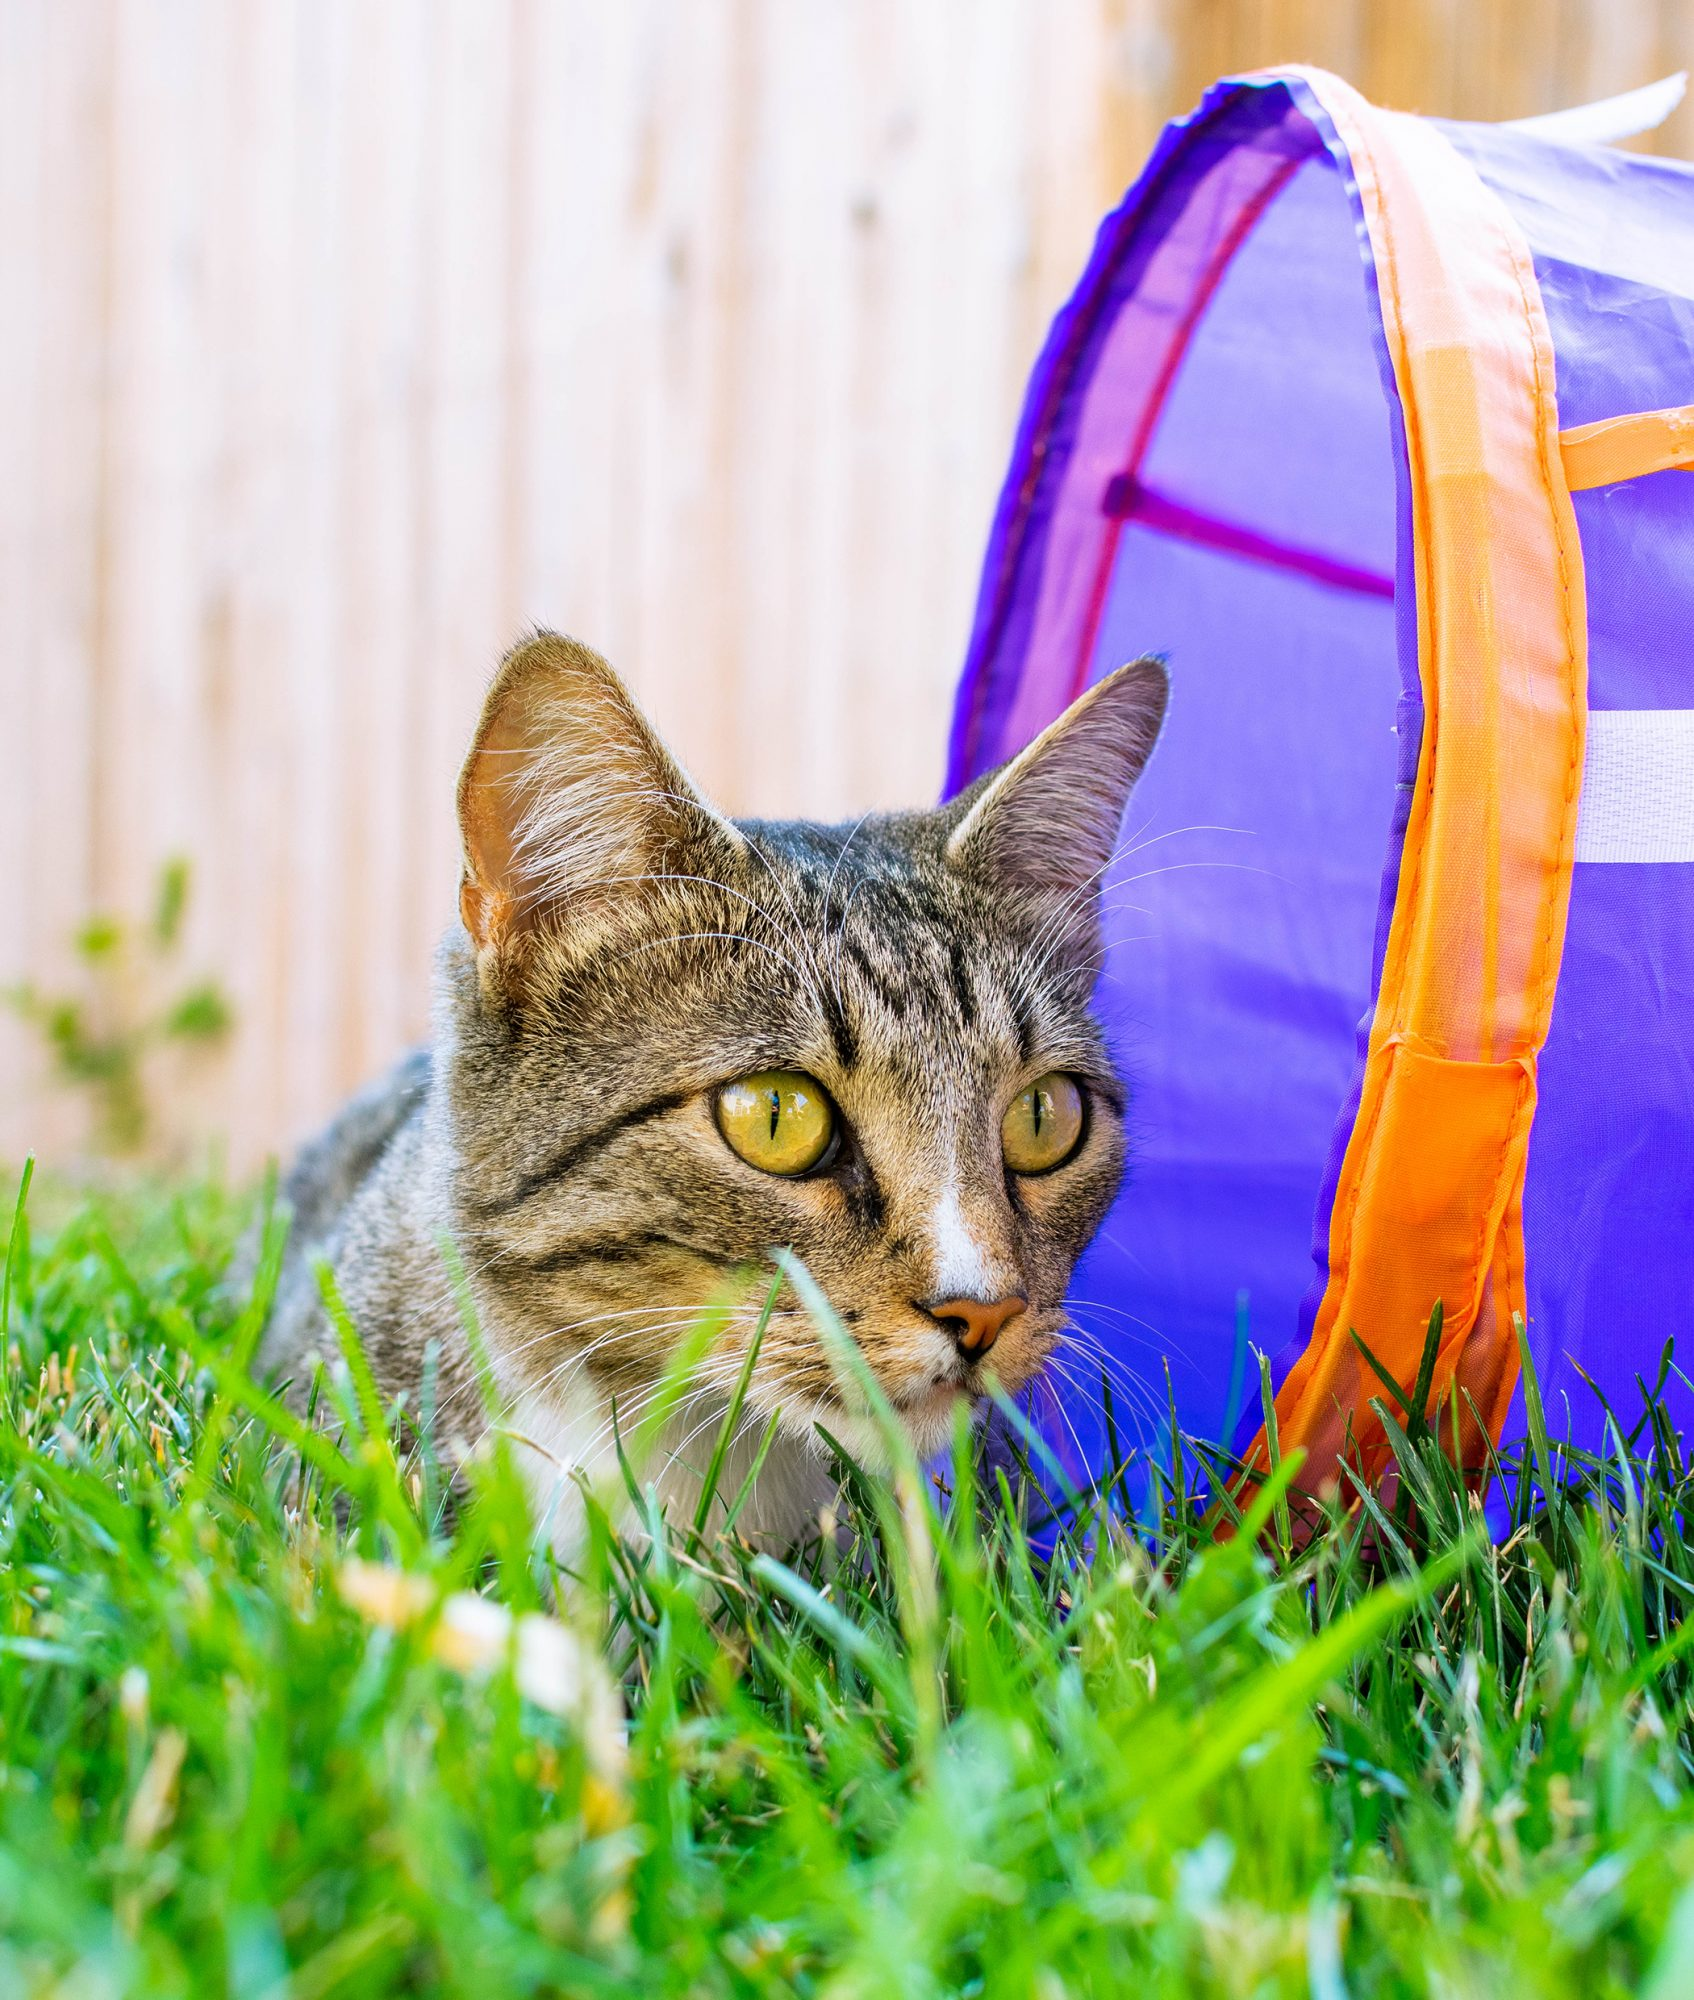 Tuck the cat sitting outside in the grass next to a play tunnel